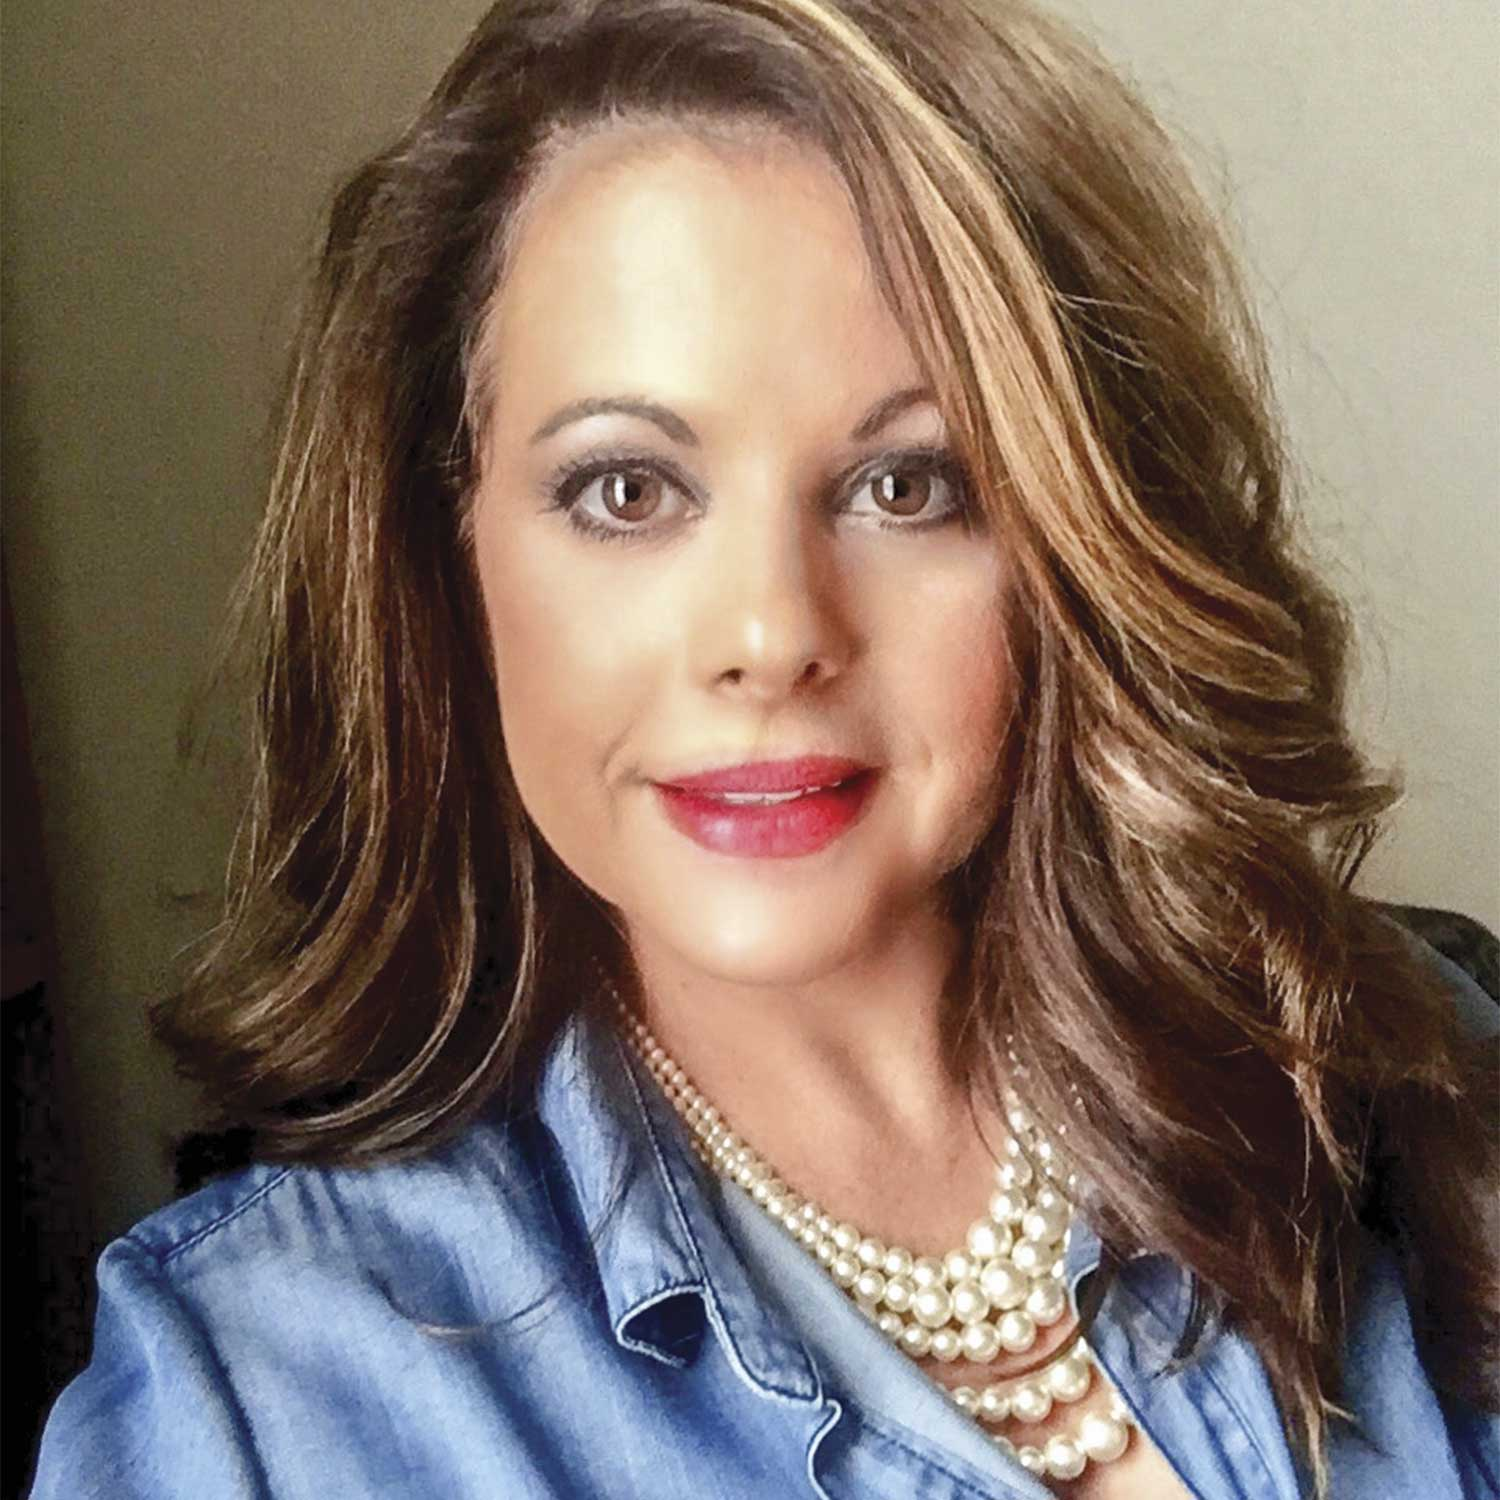 Trauma therapist Angela Childers specializes in treatment of post-traumatic stress disorder (PTSD), and has worked with Kentucky Post-Critical Incident Seminar (KYPCIS) for more than a year. She said PTSD is a normal response to an abnormal event. (Photo provided)